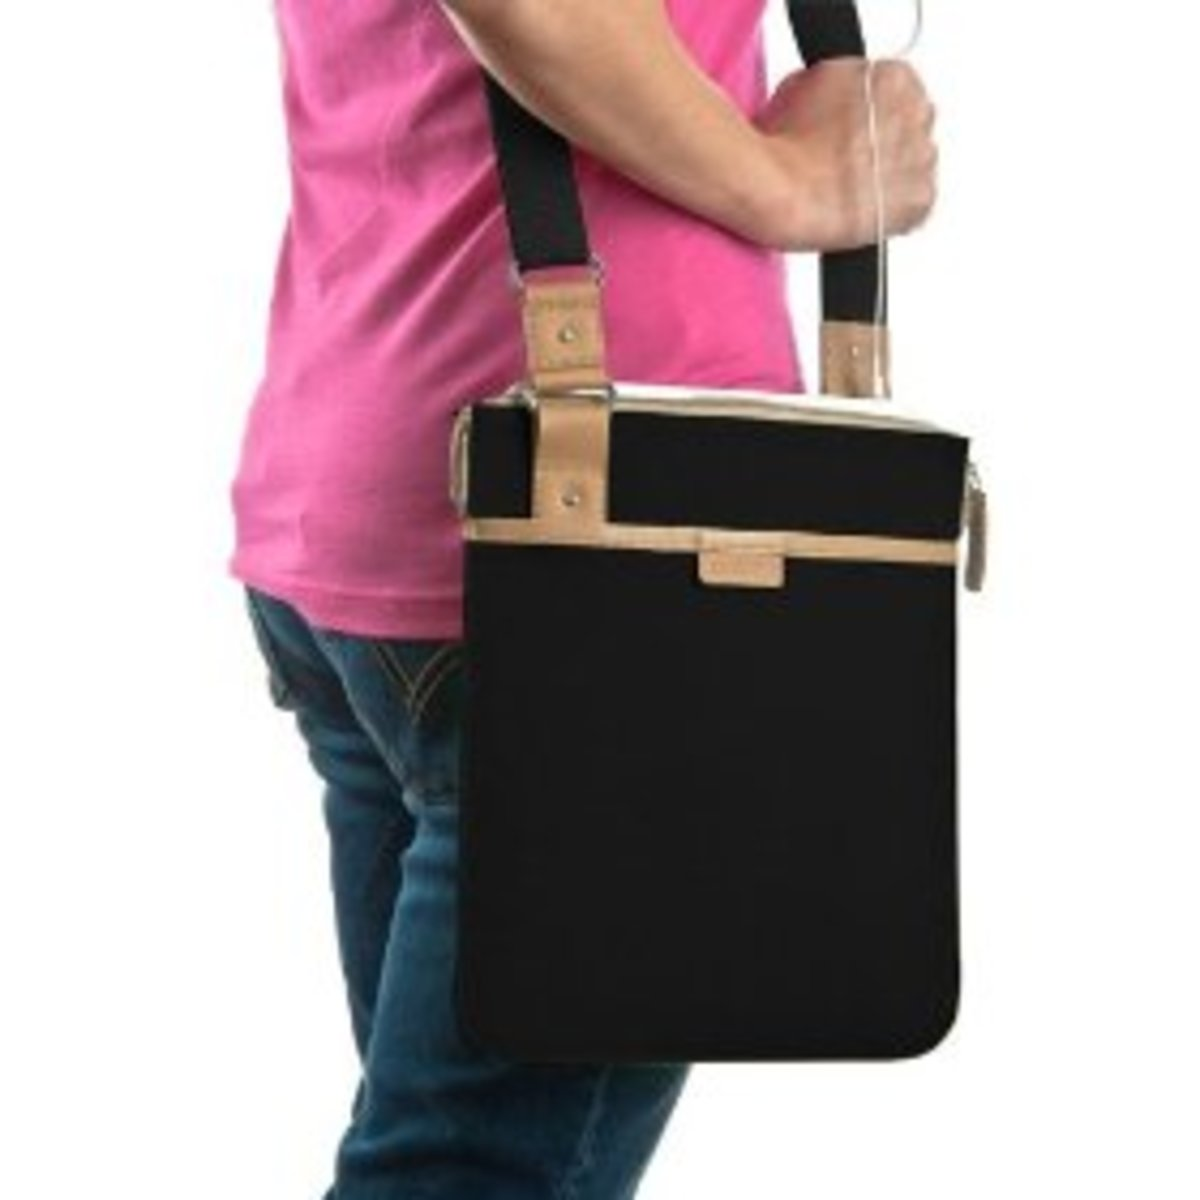 iPad Purse in Black